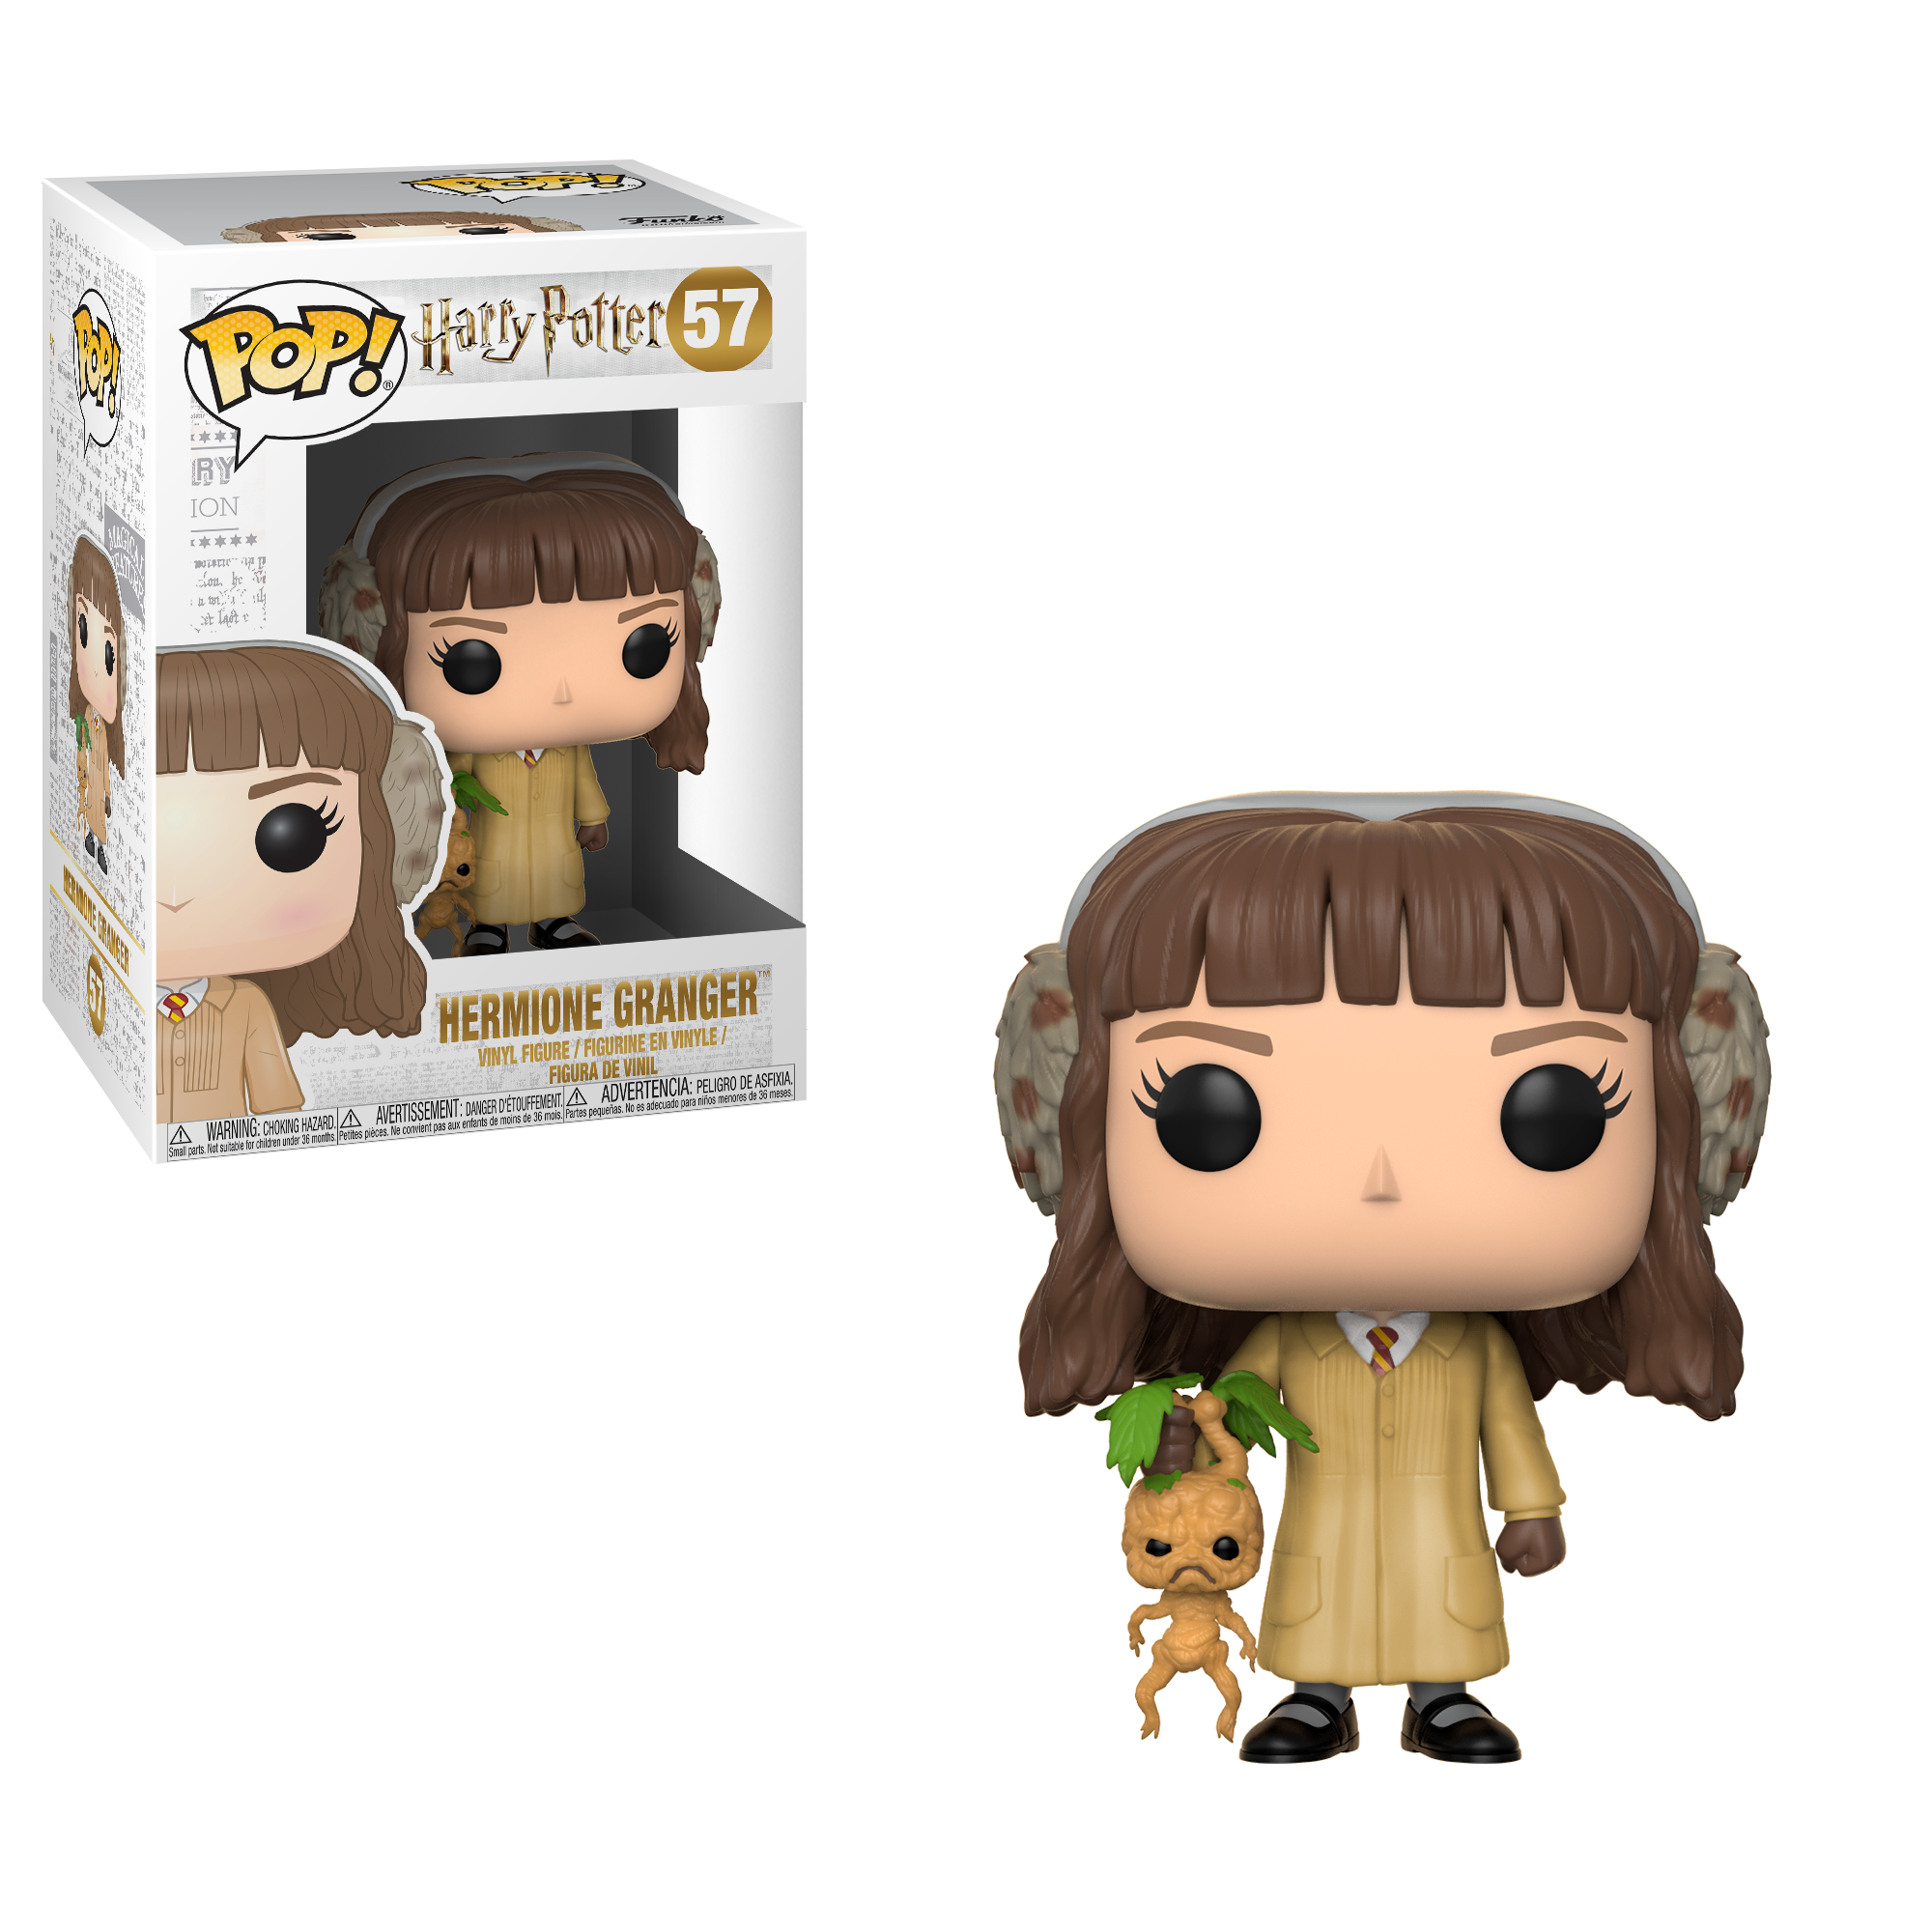 Pop! Movies: Harry Potter - Hermione Granger | Pop! Vinyl | Catalog ...